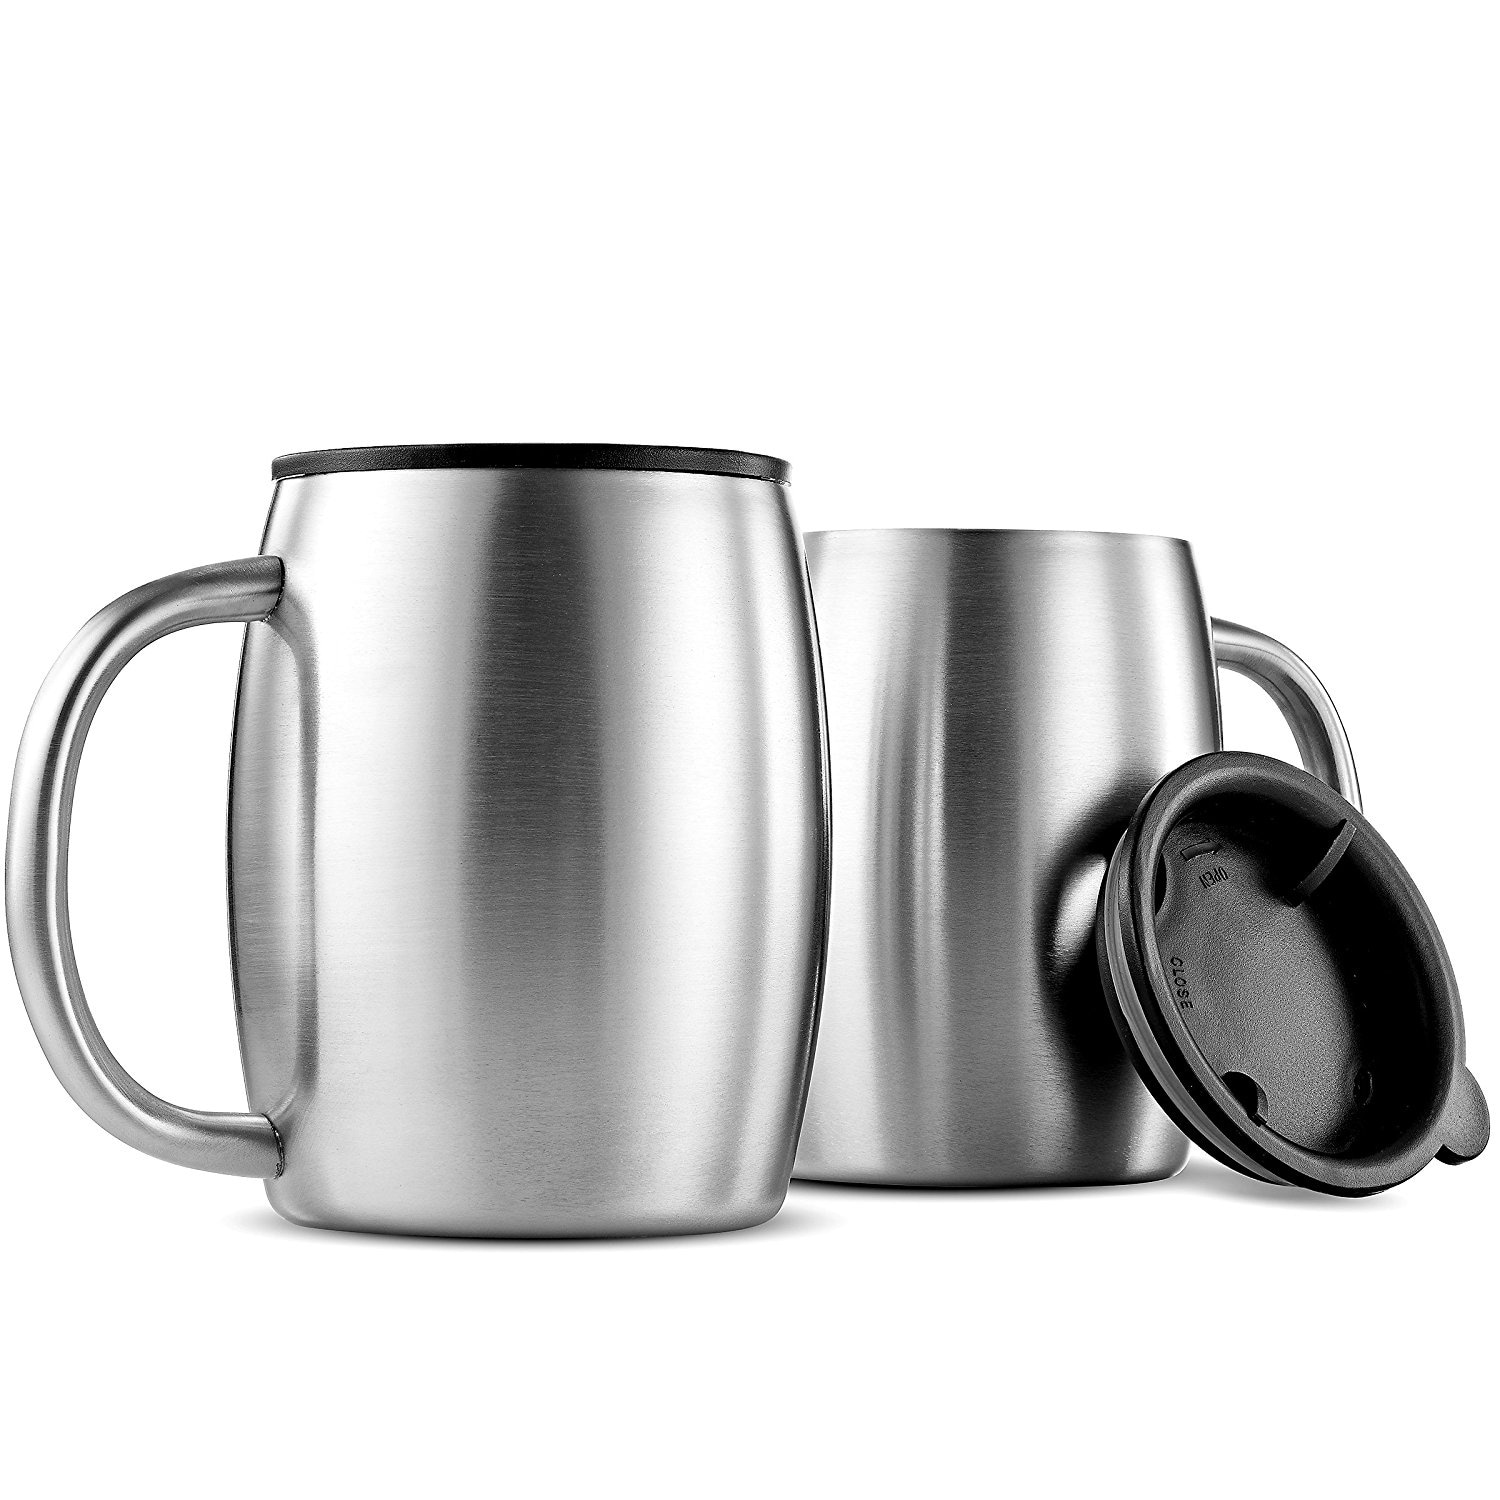 coffee mugs insulated stainless steel best mugs design. Black Bedroom Furniture Sets. Home Design Ideas